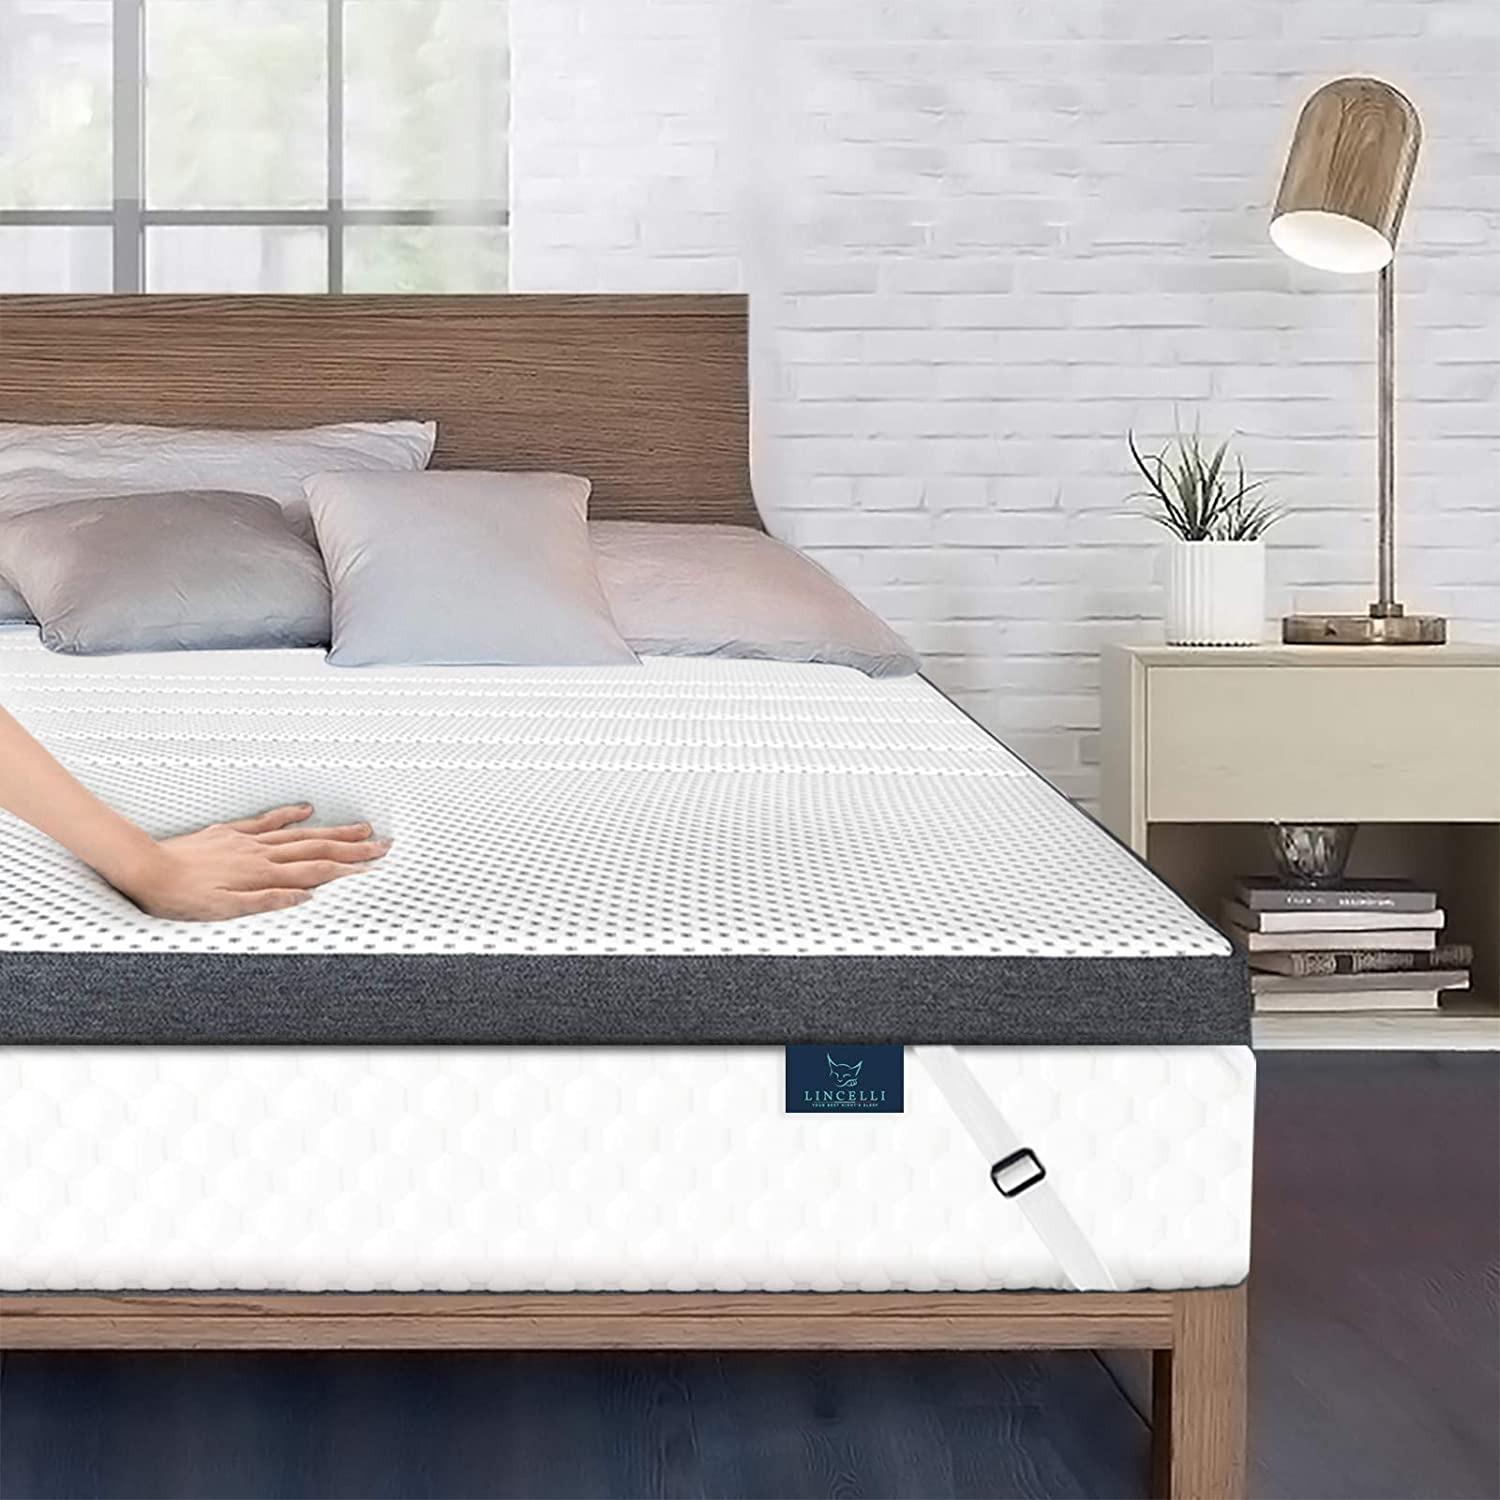 """LINCELLI 4"""" Quilted Double-Layer Memory Foam Mattress Topper Review"""